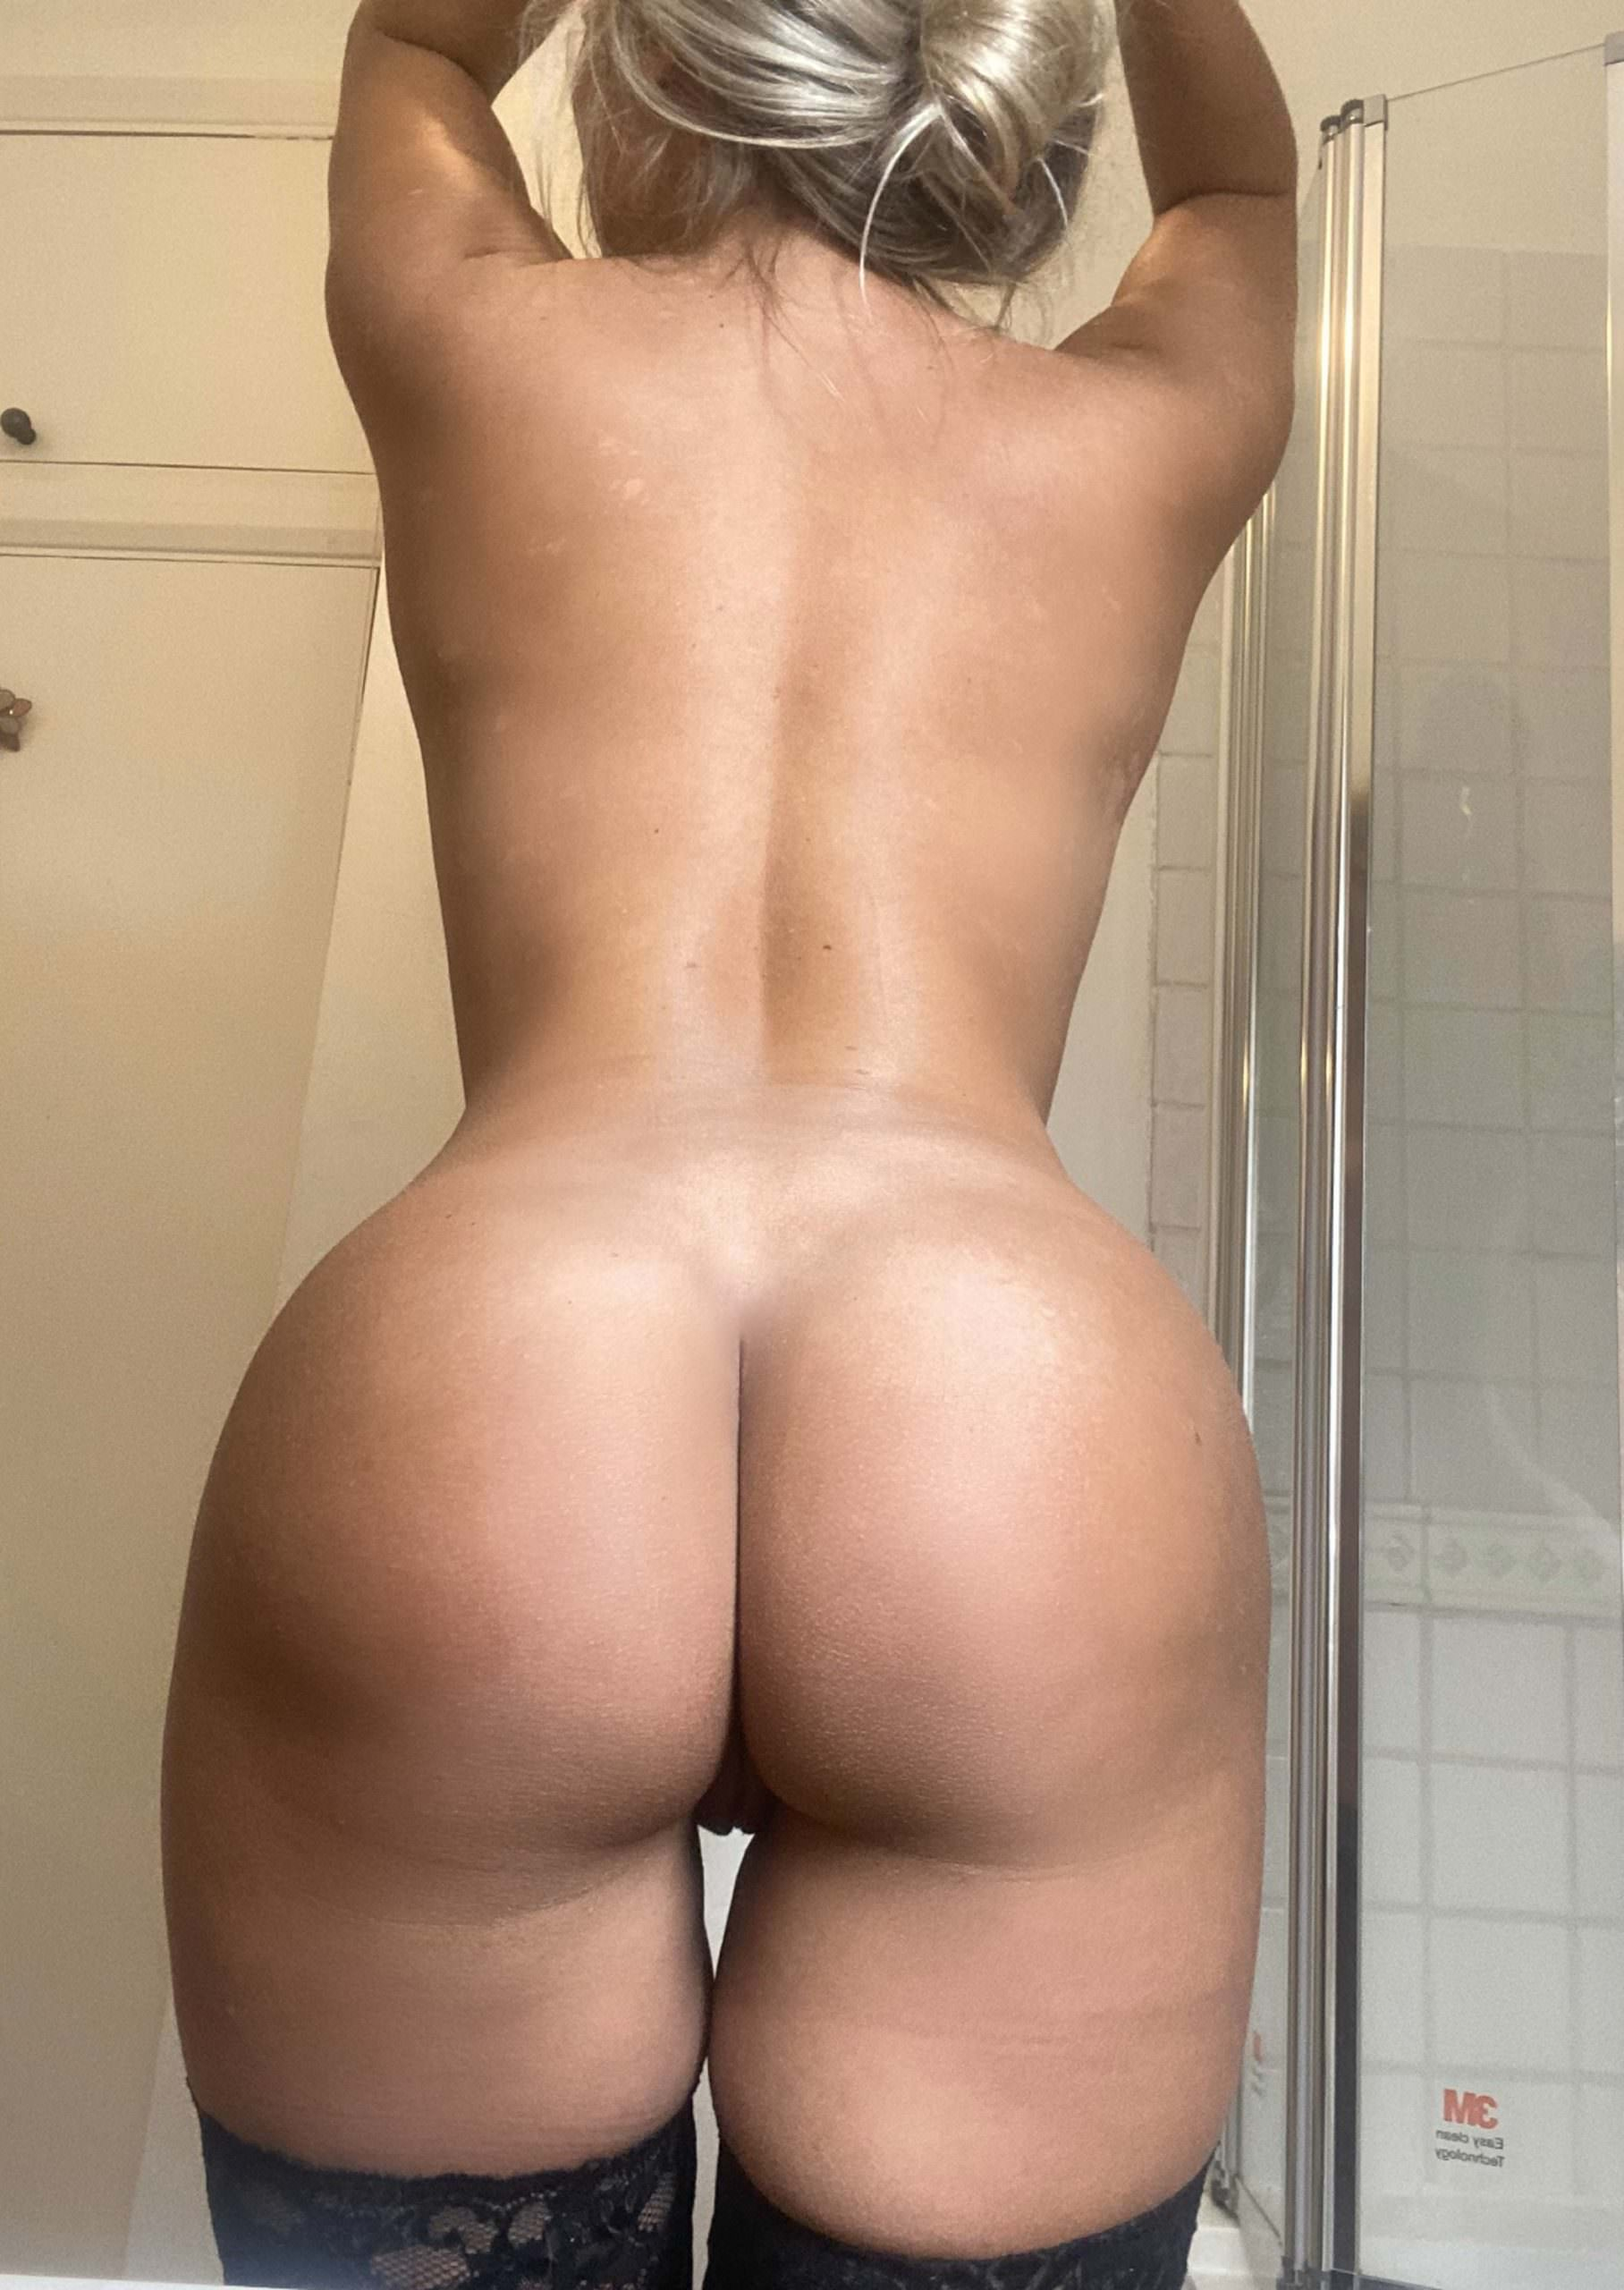 Luce Nicholson Nude Onlyfans Lucy Leaked 0005